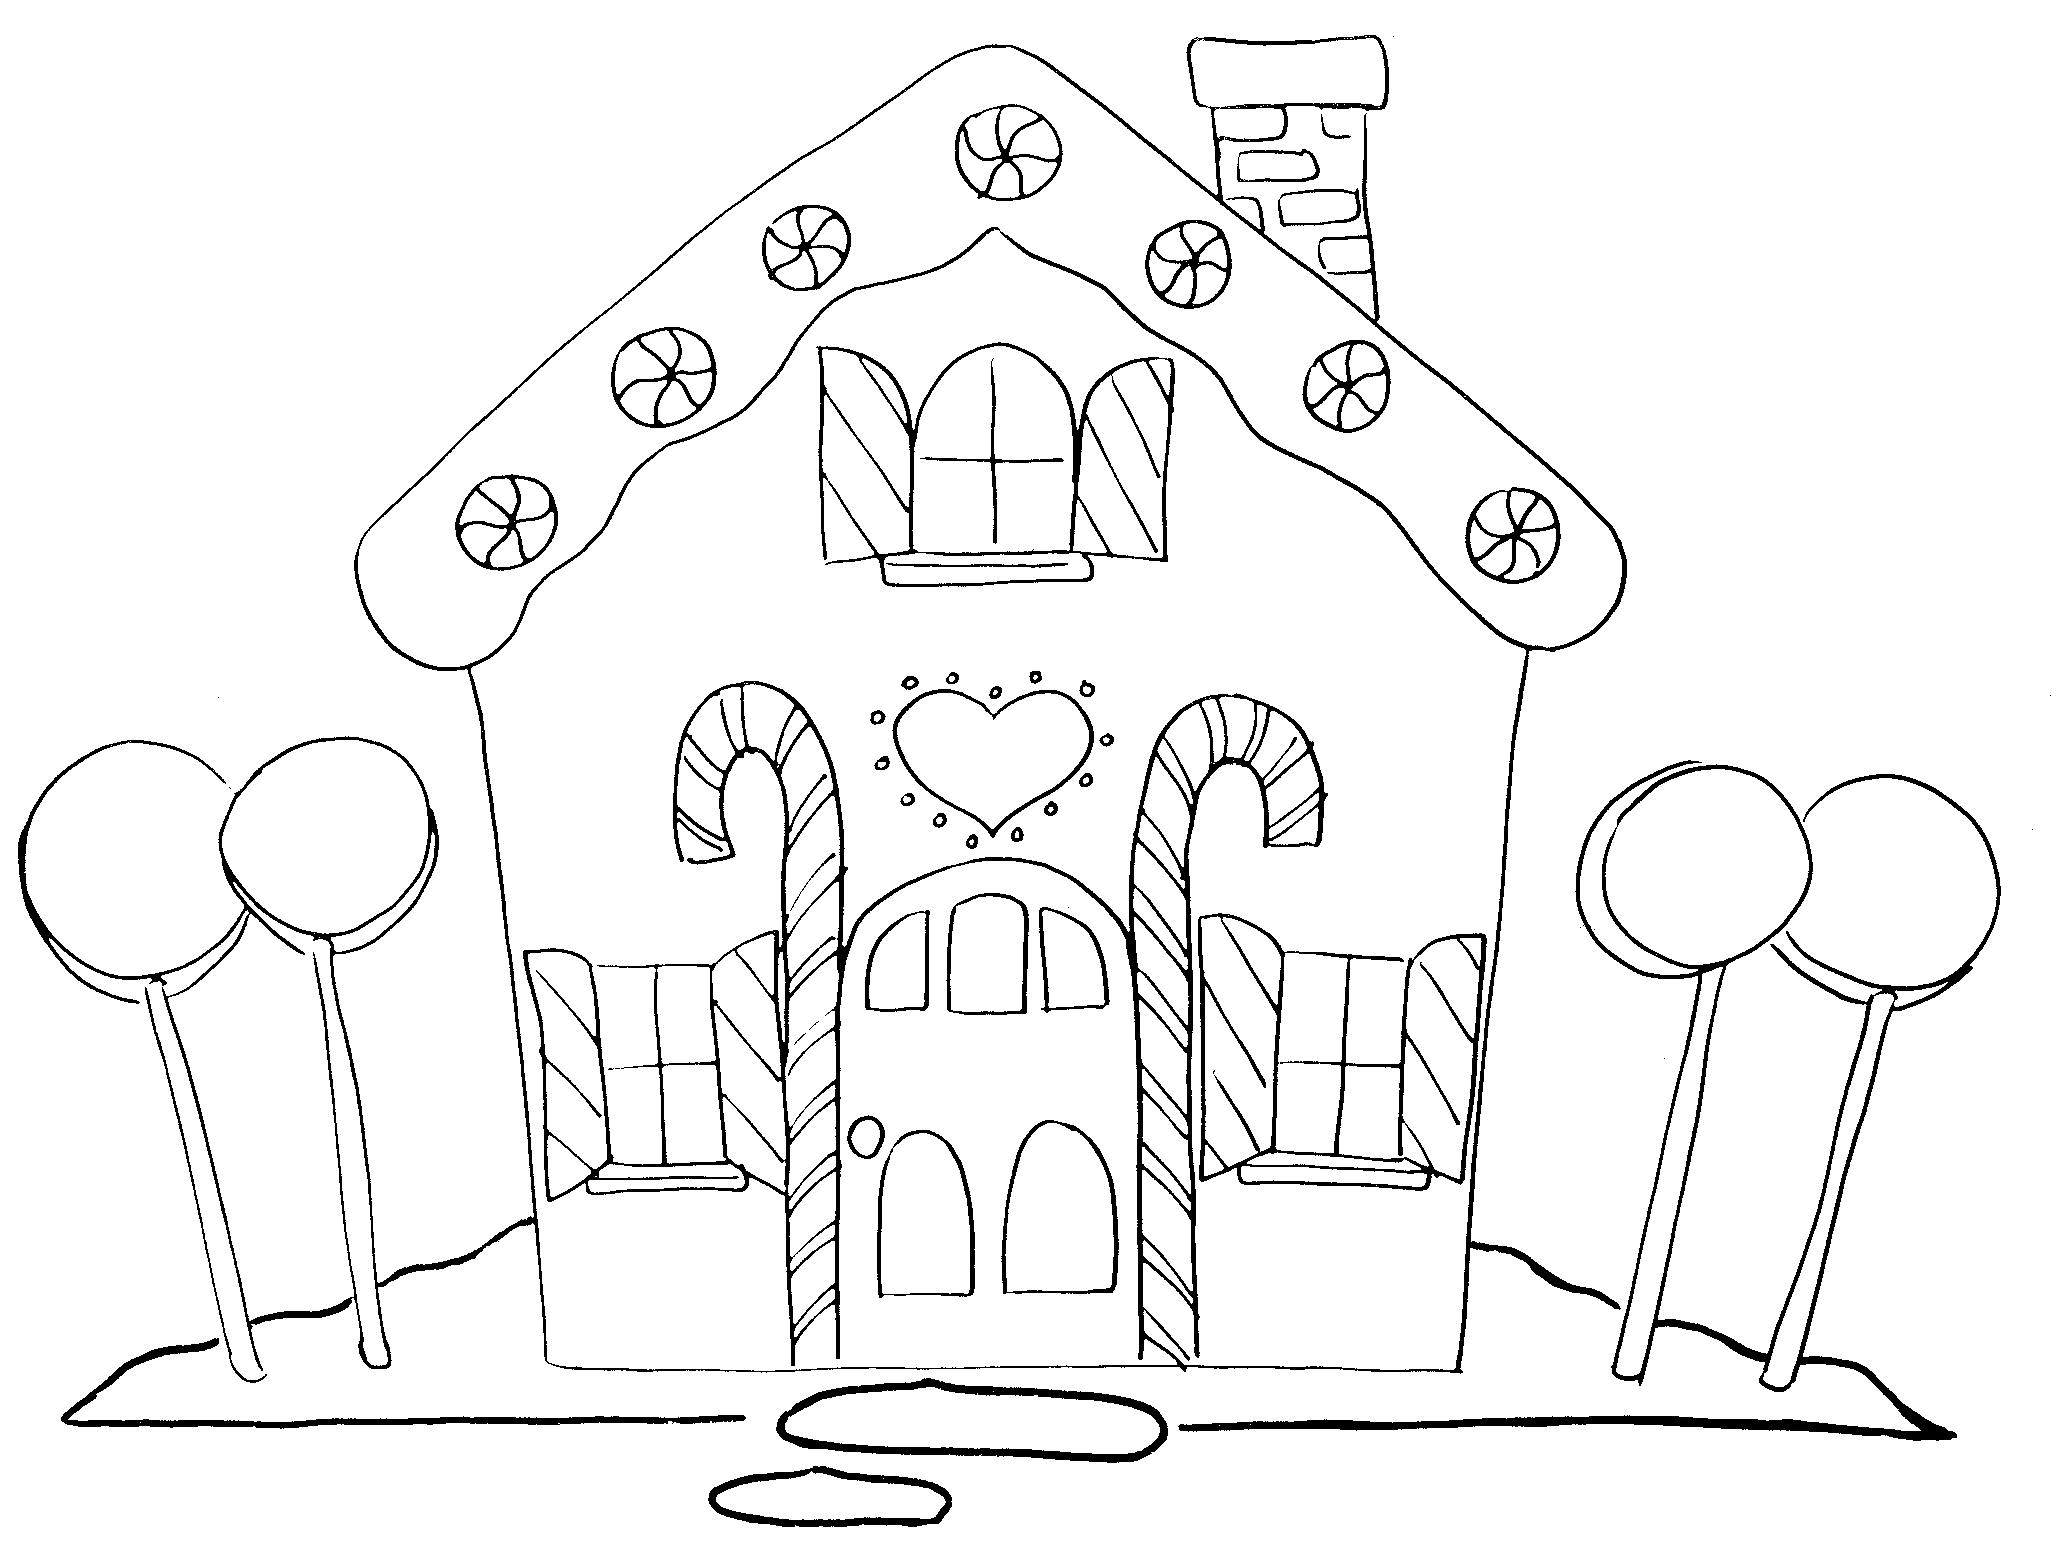 coloring gingerbread house 30 free gingerbread house coloring pages printable gingerbread house coloring